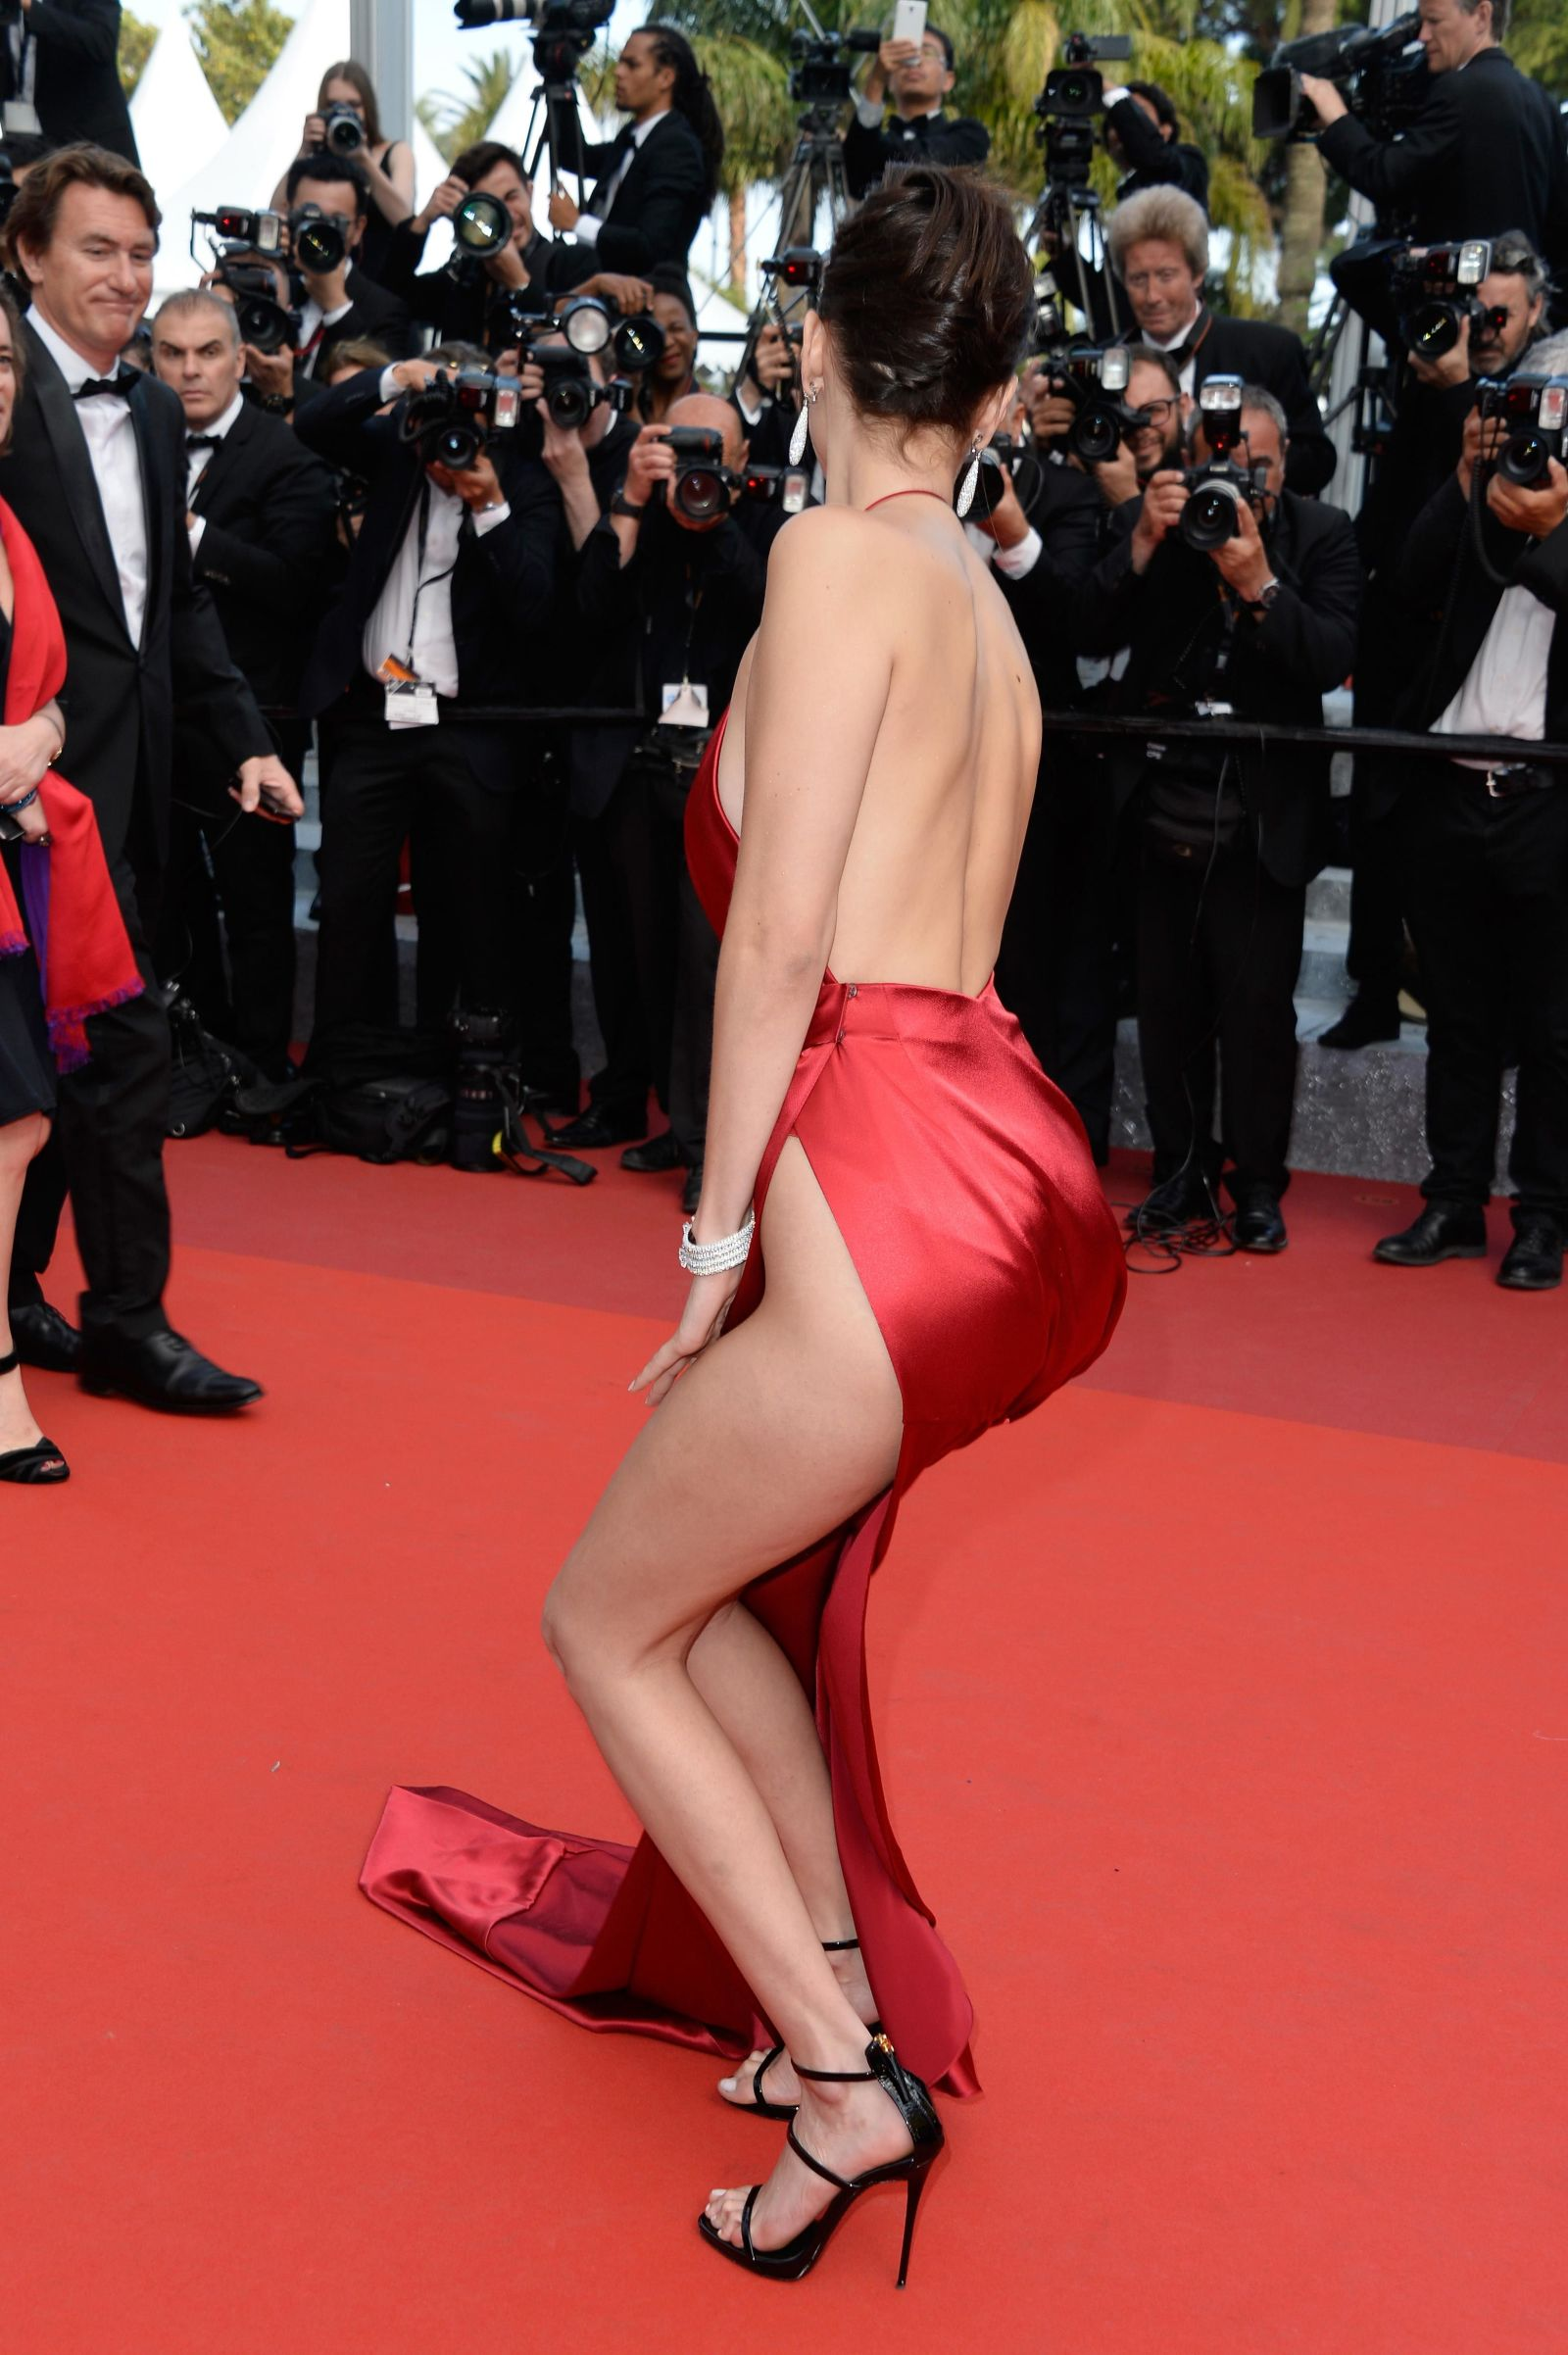 bella hadid red dress cannes 2016 (17)